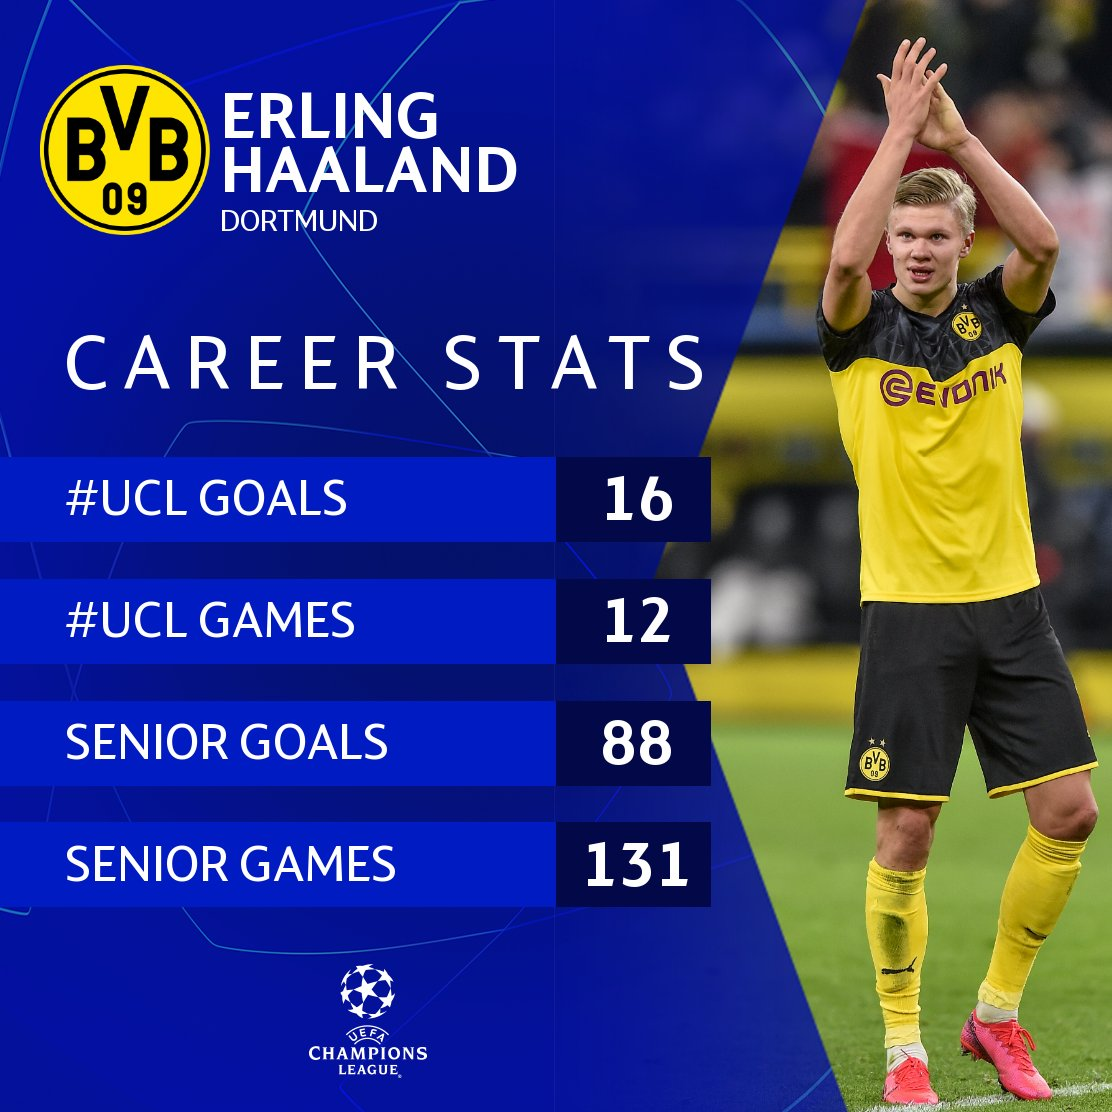 Reminder. Erling Haaland is 20 years old 🤯🤯🤯  #UCL